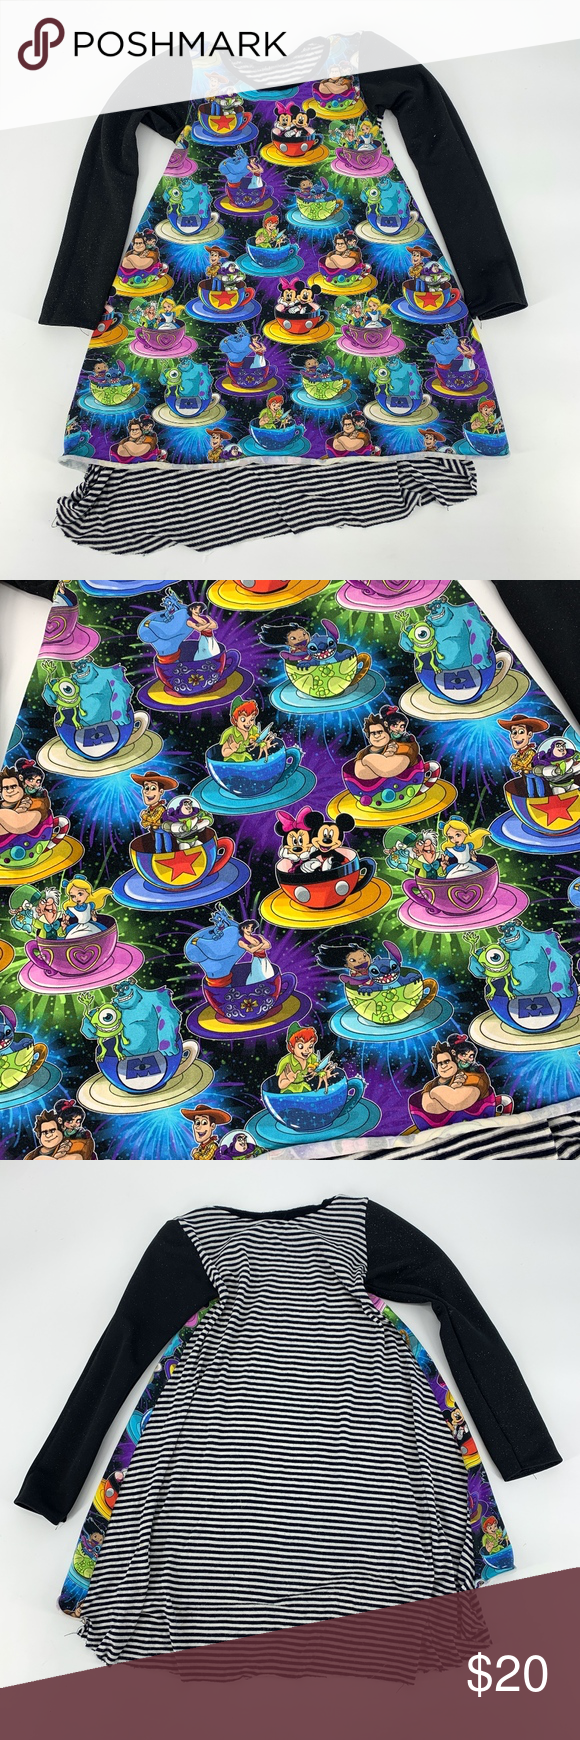 Boutique Disney Tea Cup Character Custom Dress Super cute long sleeve custom boutique dress, all different Disney and Pixar characters in tea cups. Gently used please see all photos.   Fits a girls size 6 Dresses Casual #disneycups